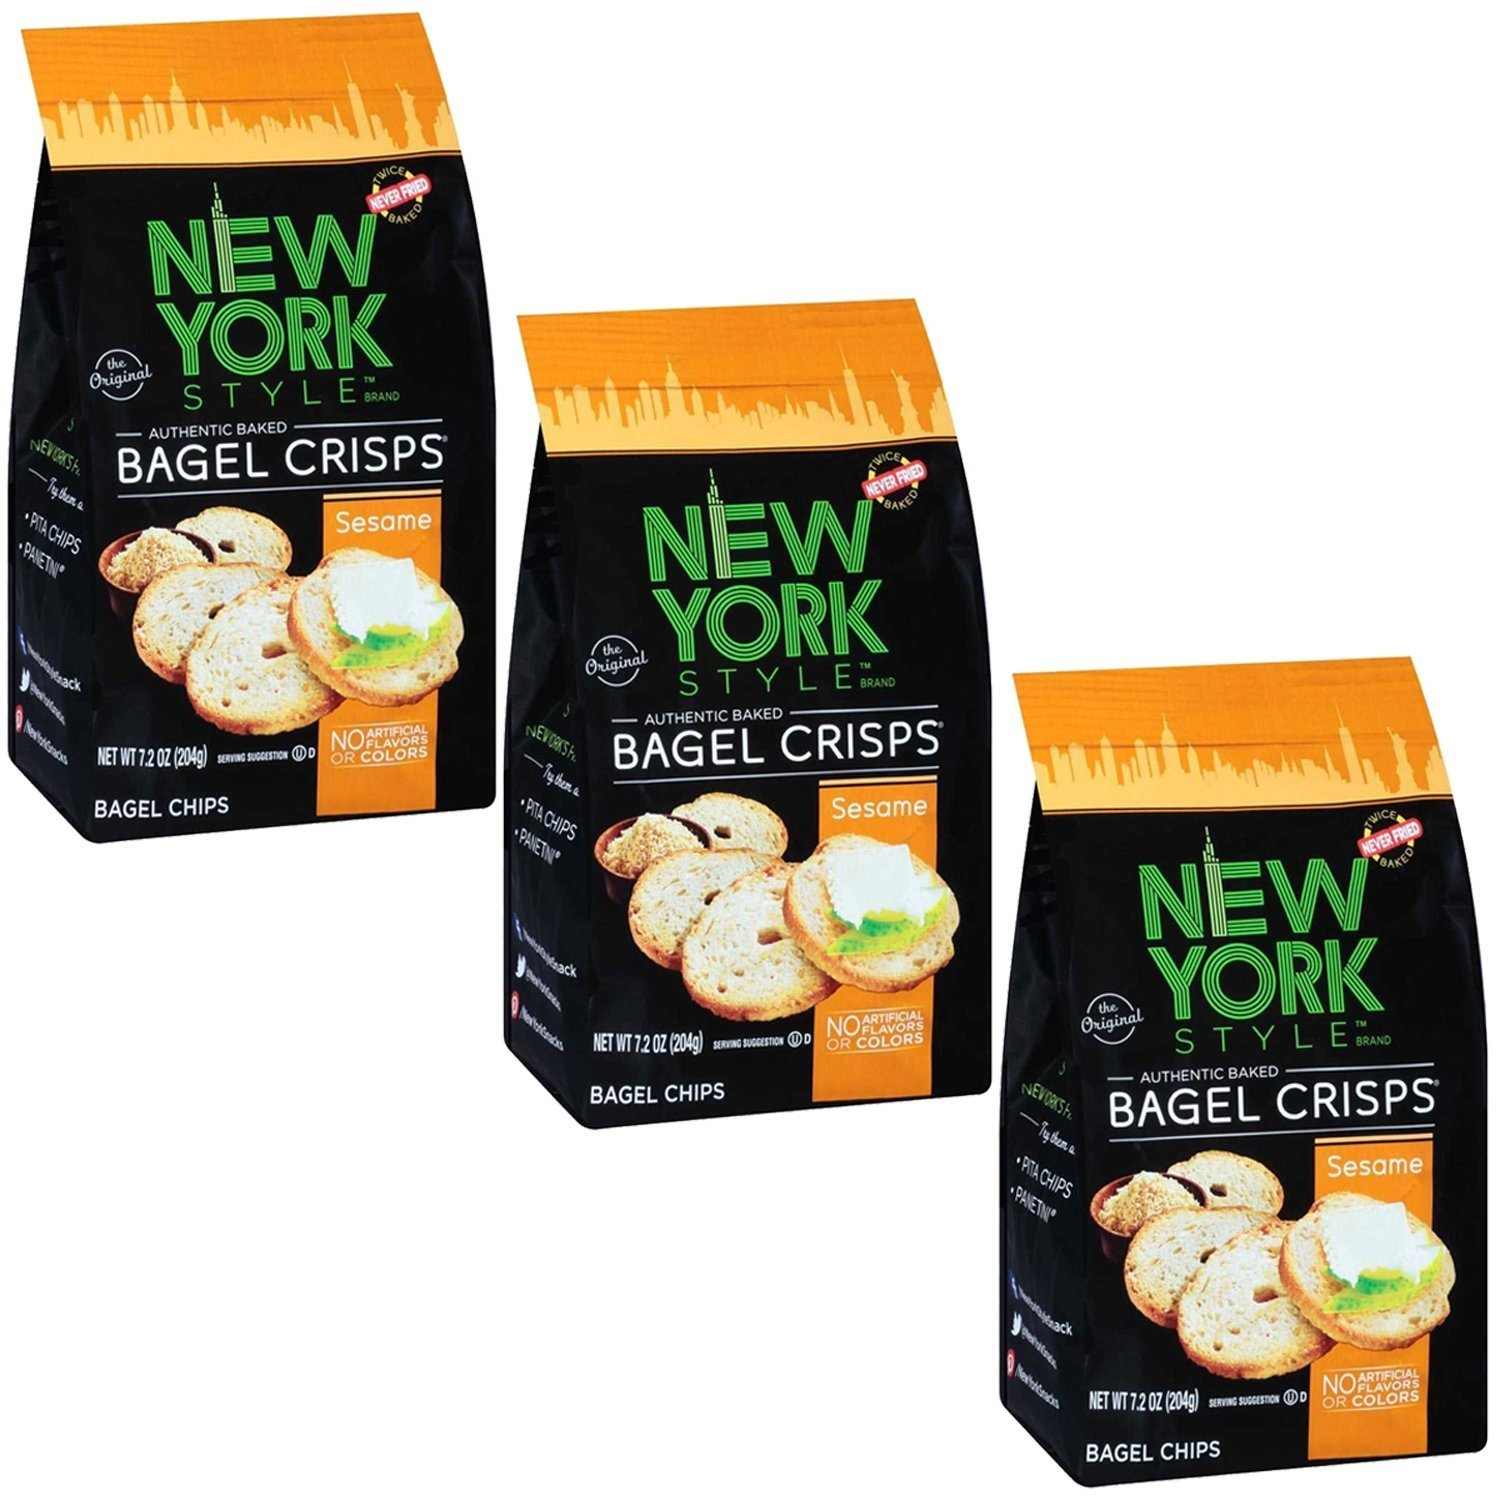 New York Style Bagel Crisp, Sesame, 7.2 Ounce (Pack of 3) by New York Style